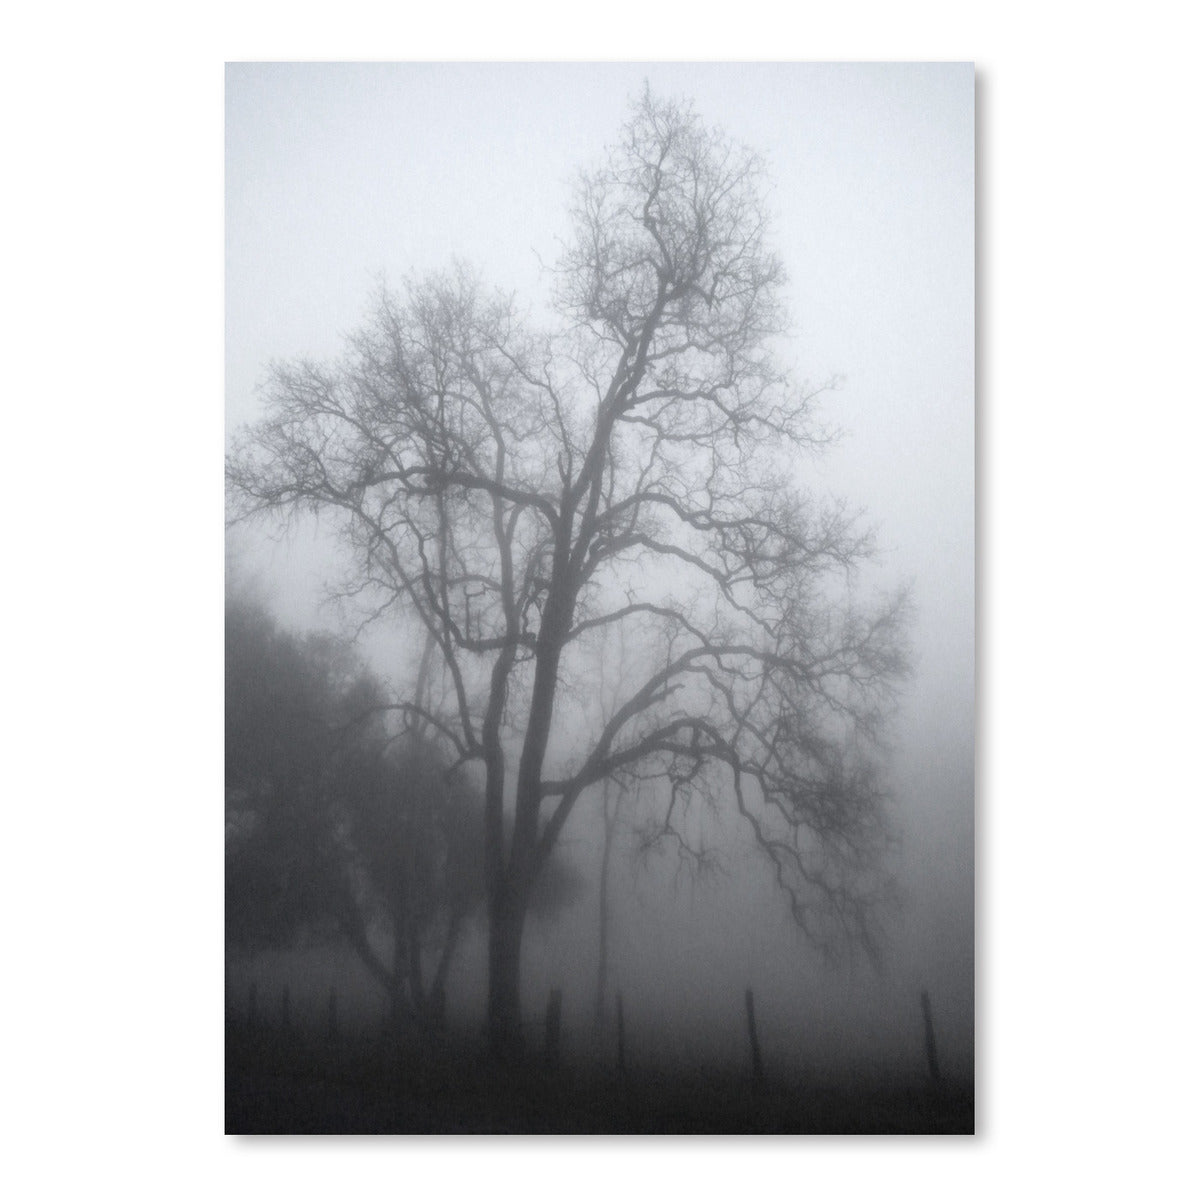 Misty Days by Hope Bainbridge - Art Print - Americanflat